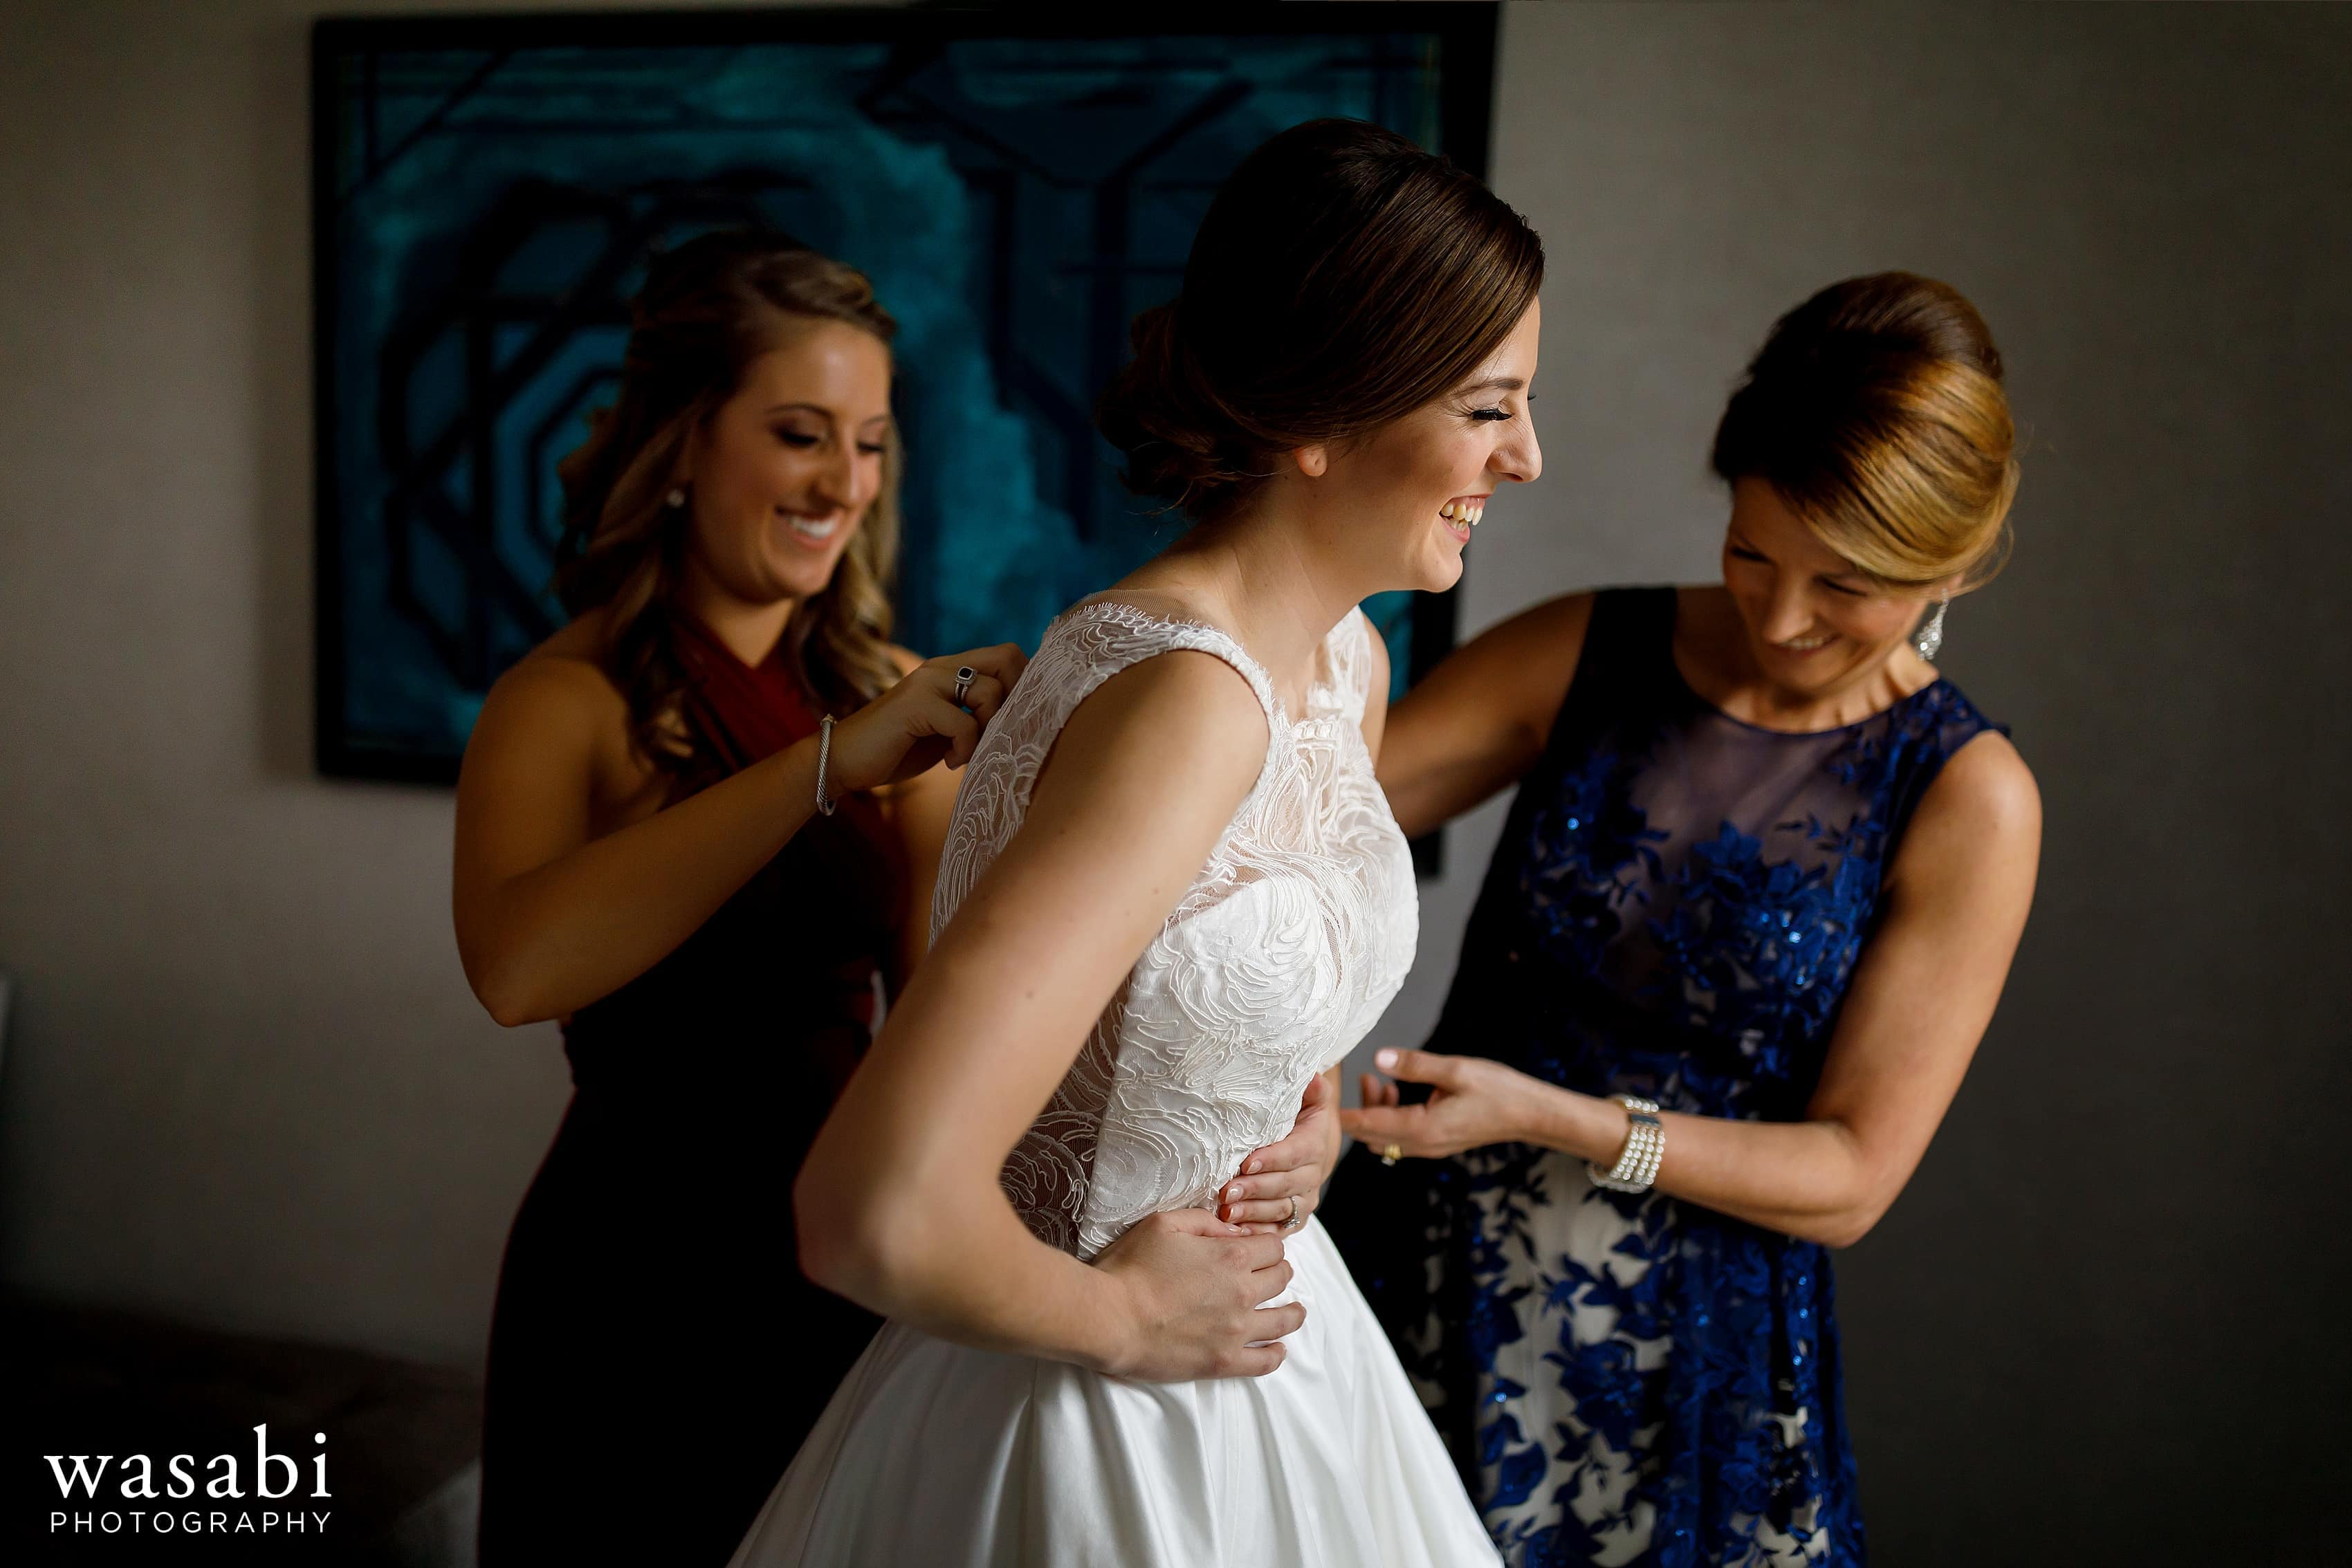 Mom and sister help bride into dress in the presidential suite while getting ready for wedding at InterContinental Chicago Magnificent Mile Hotel